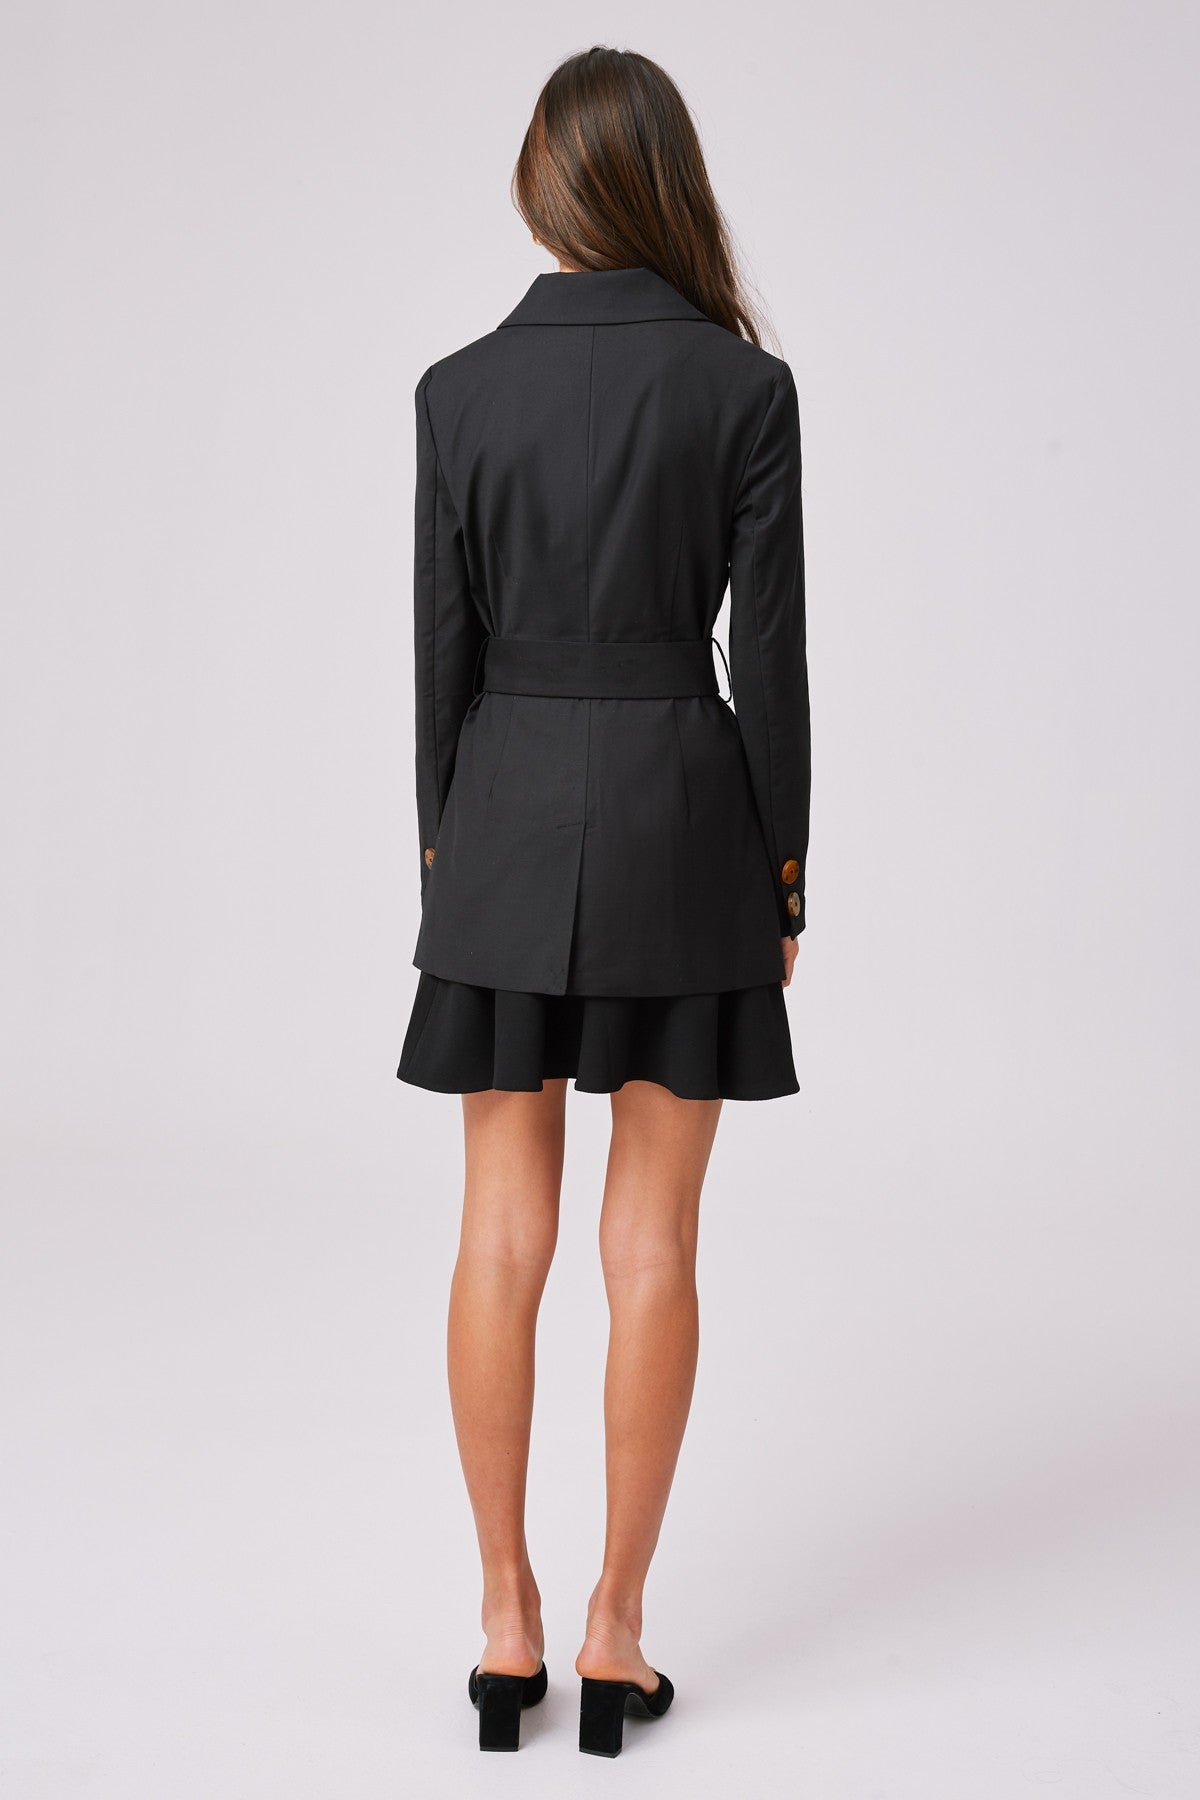 Finders Jada Jacket in Black